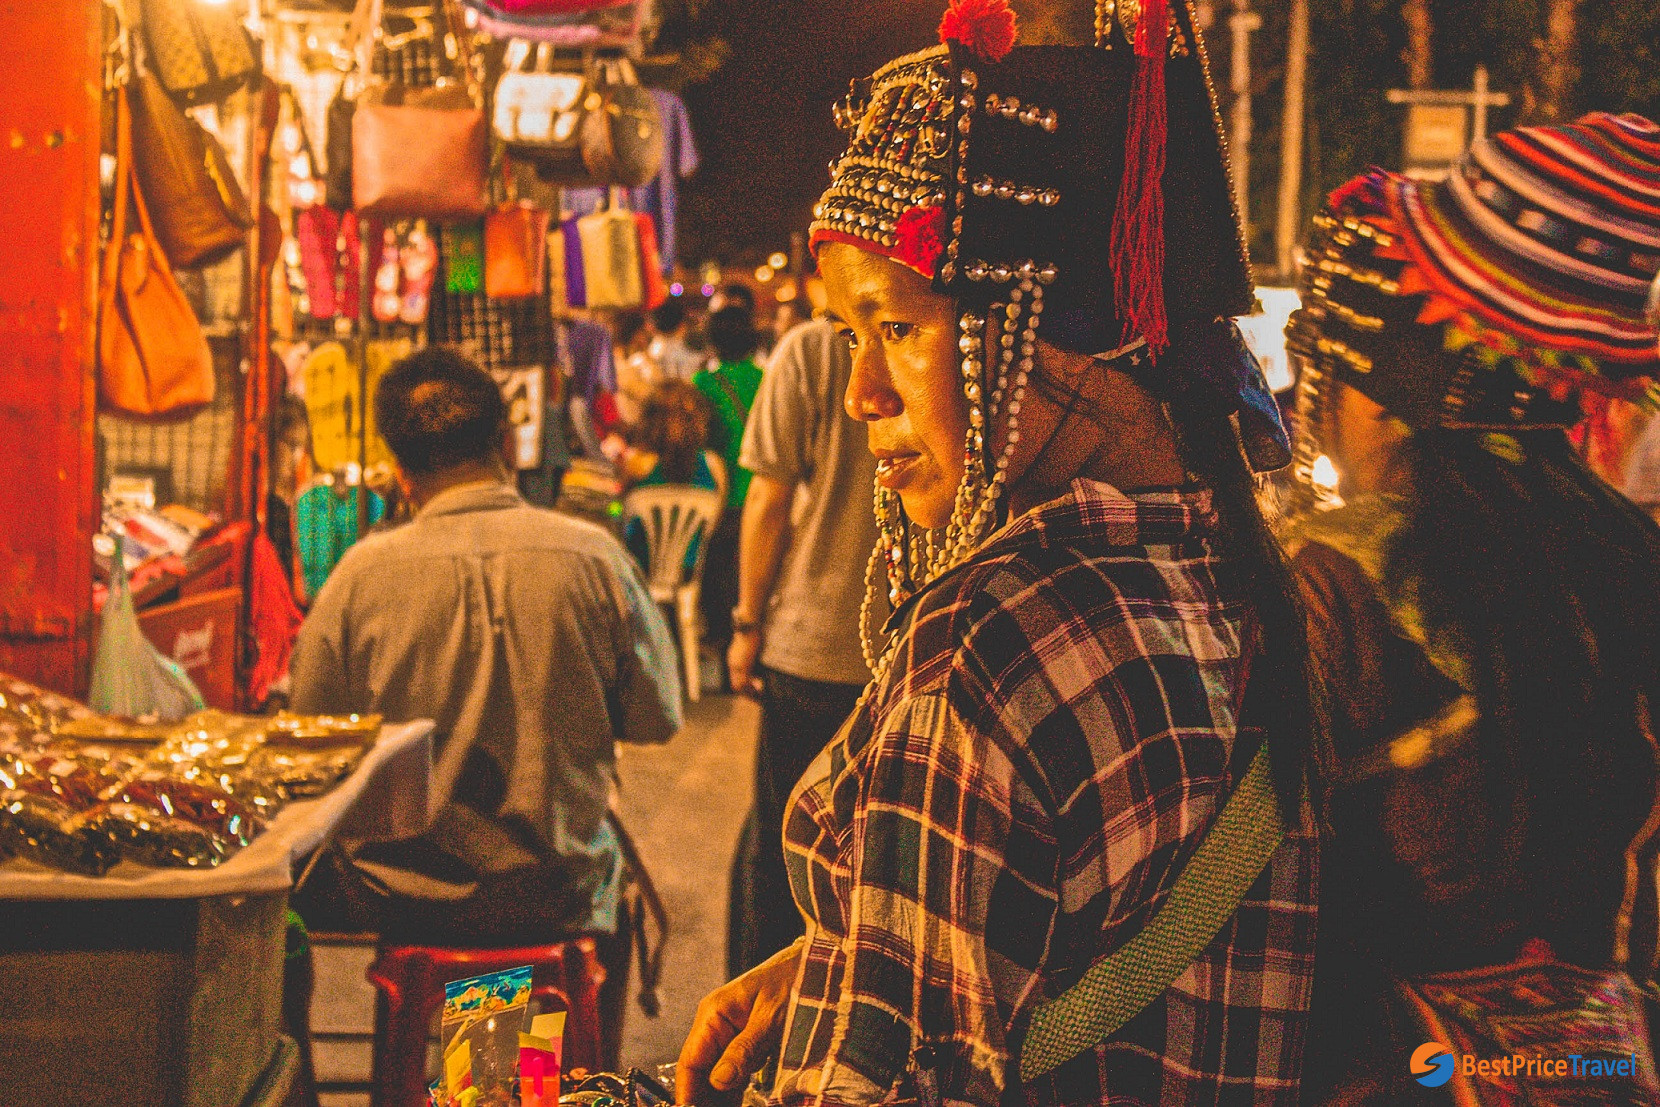 Saturday Night Market - one of best things to do in Chiang Mai